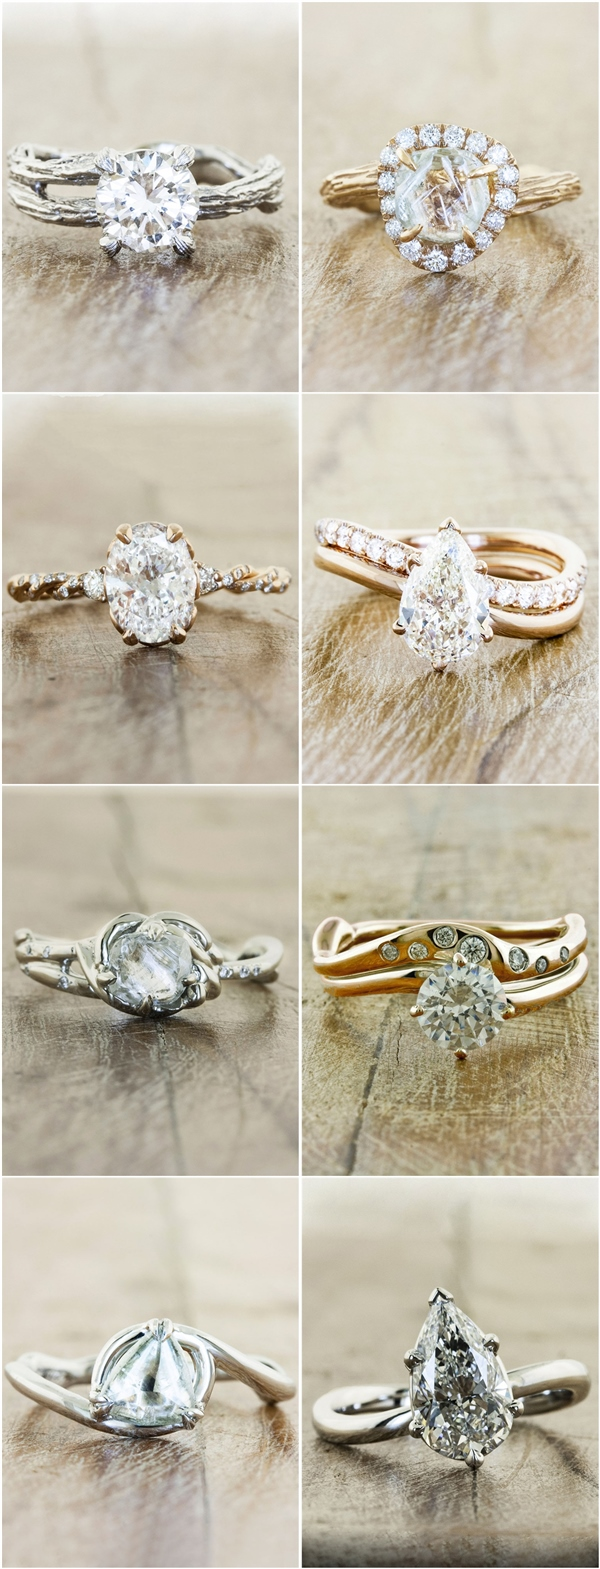 vintage engagement rings and wedding rings from ken dana design vintage wedding ring Vintage Engagement Rings and Wedding Rings from Ken Dana Design